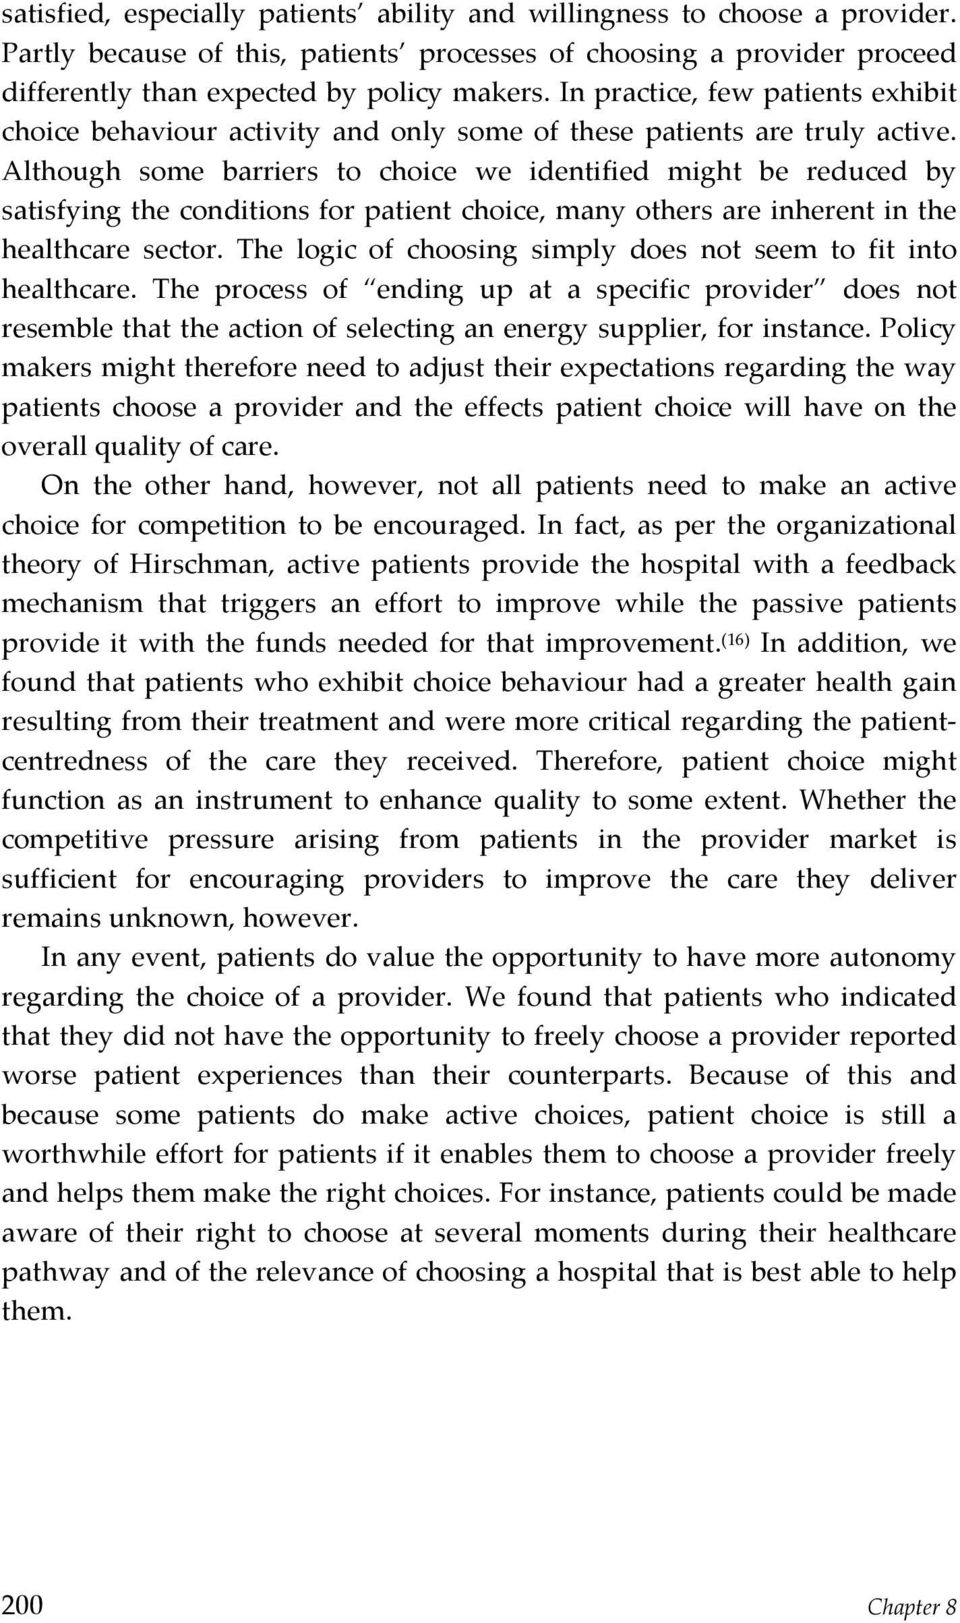 Although some barriers to choice we identified might be reduced by satisfyingtheconditionsforpatientchoice,manyothersareinherentinthe healthcare sector.